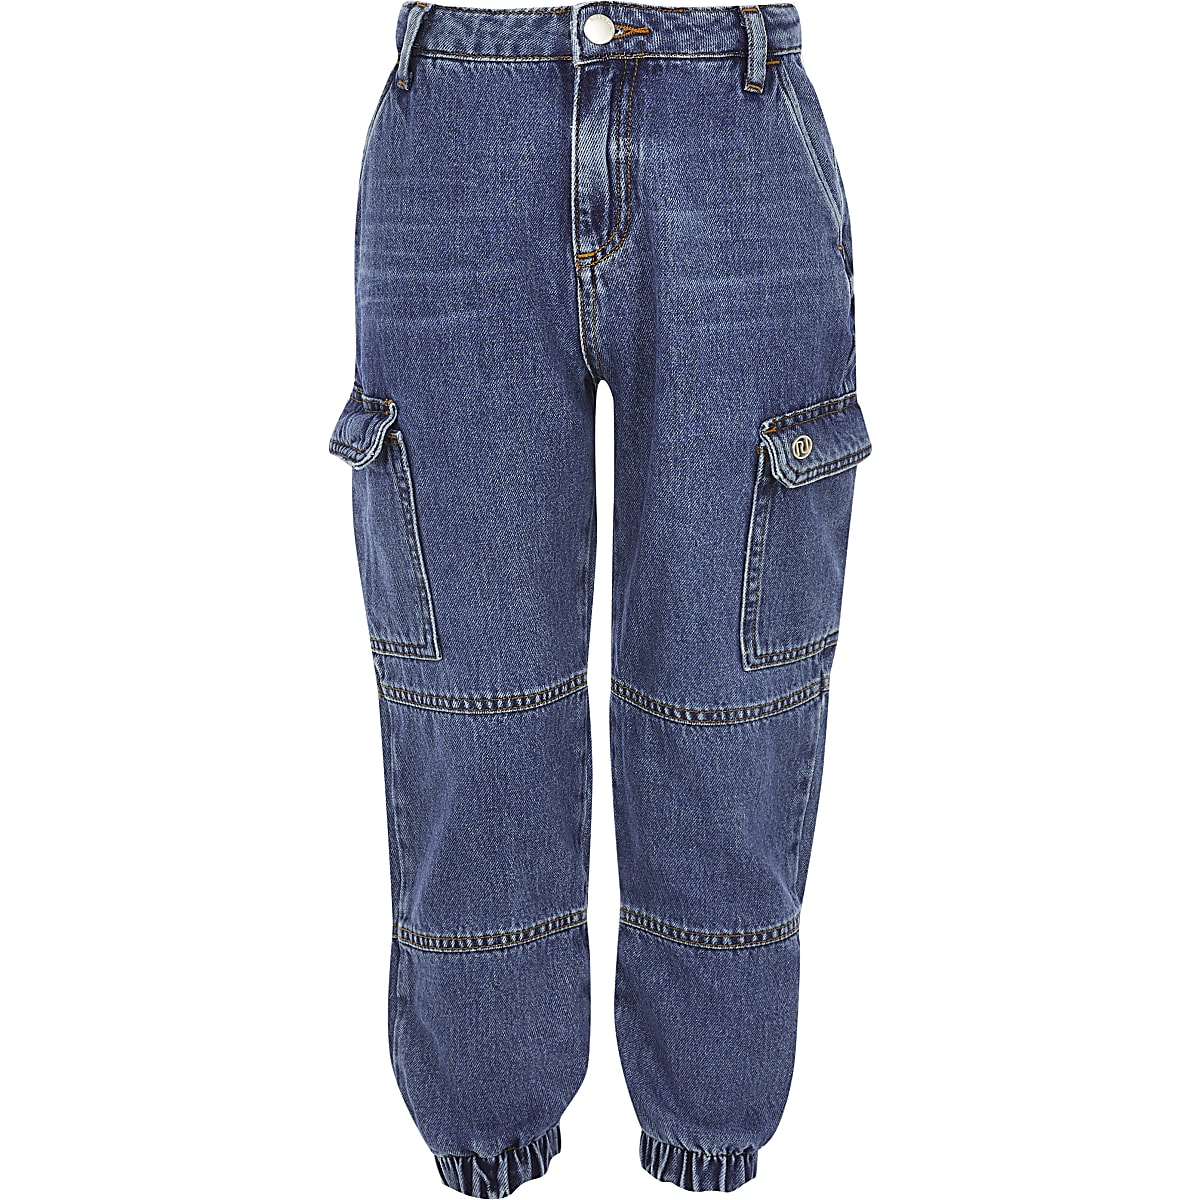 Girls blue denim jogger jeans